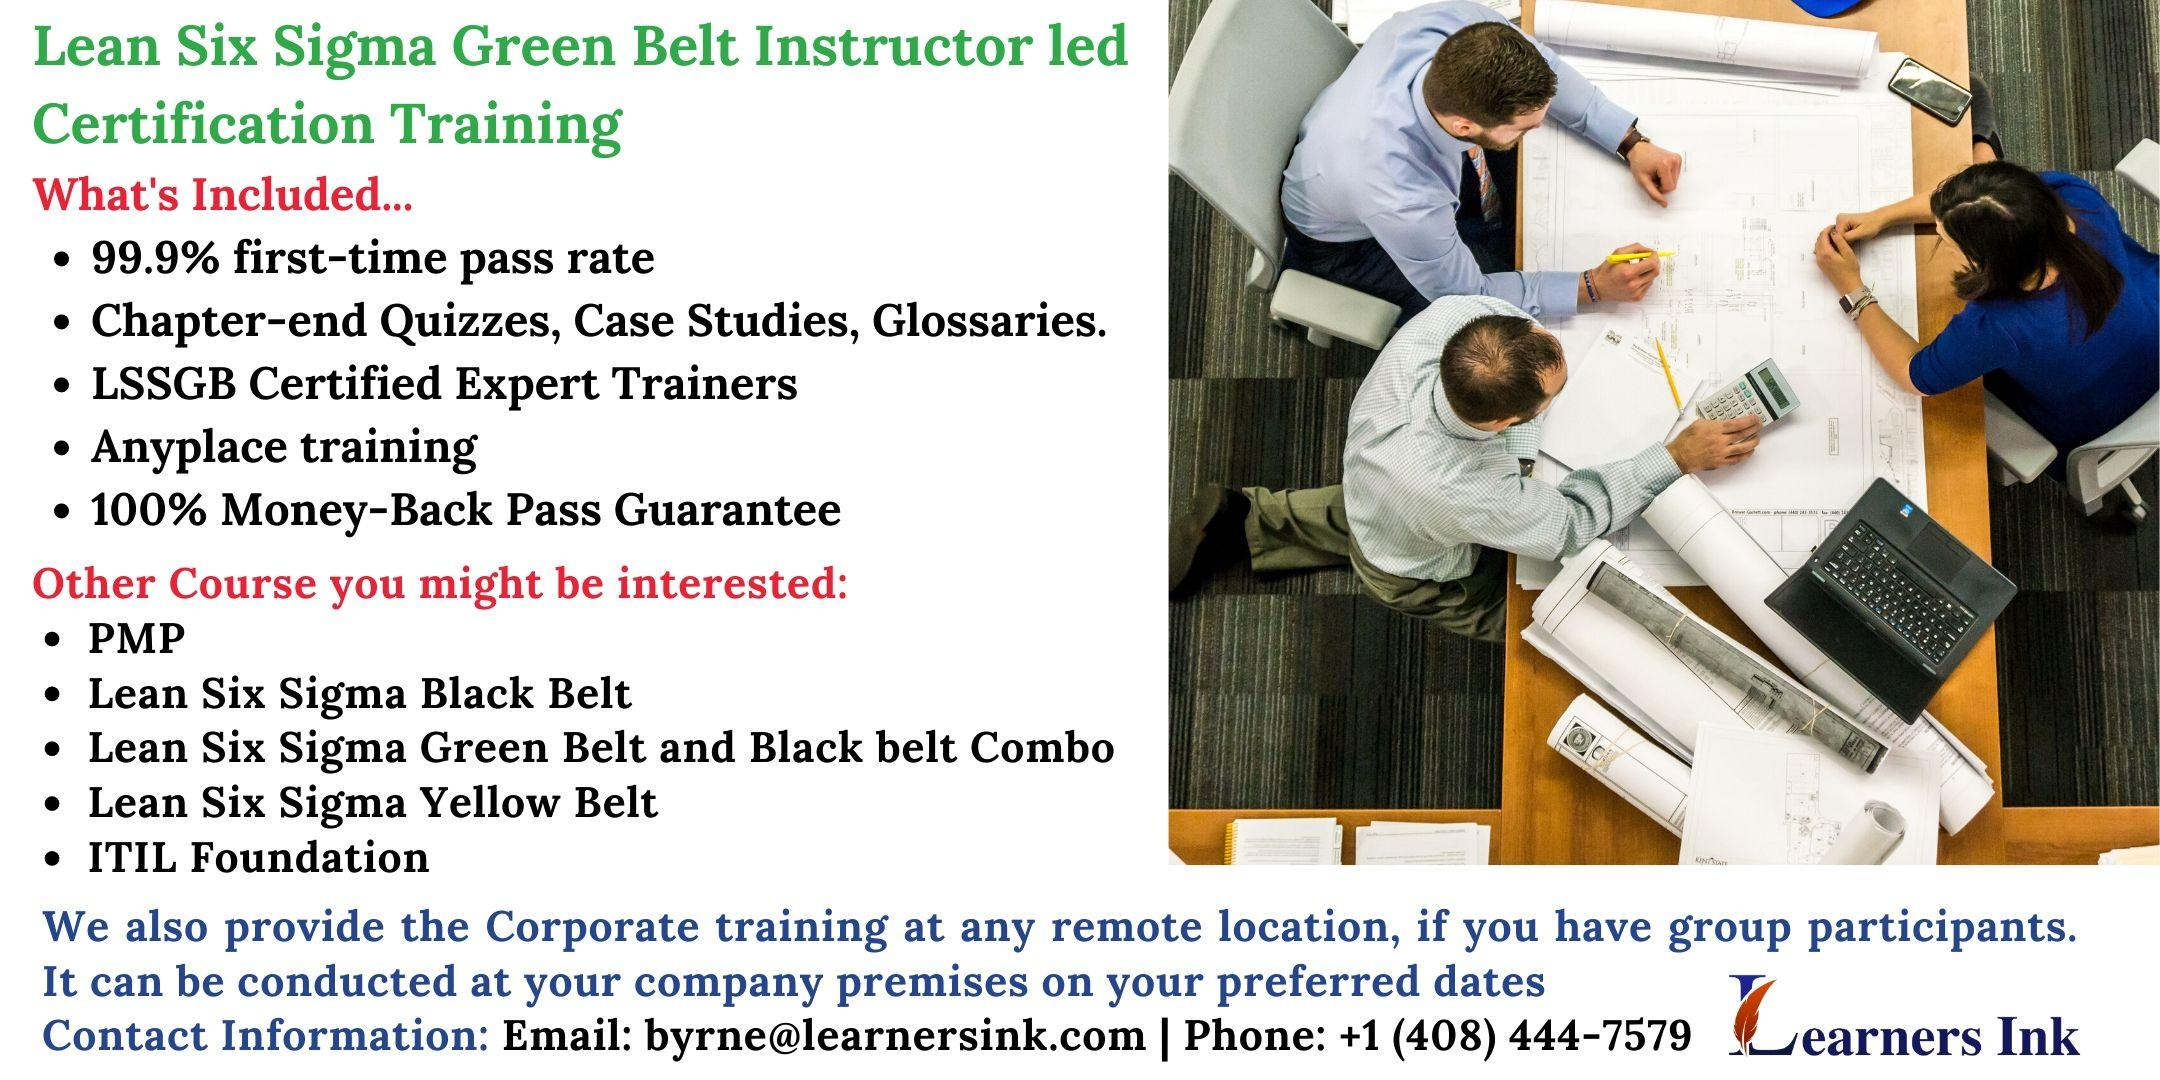 Lean Six Sigma Green Belt Certification Training Course (LSSGB) in Mesa